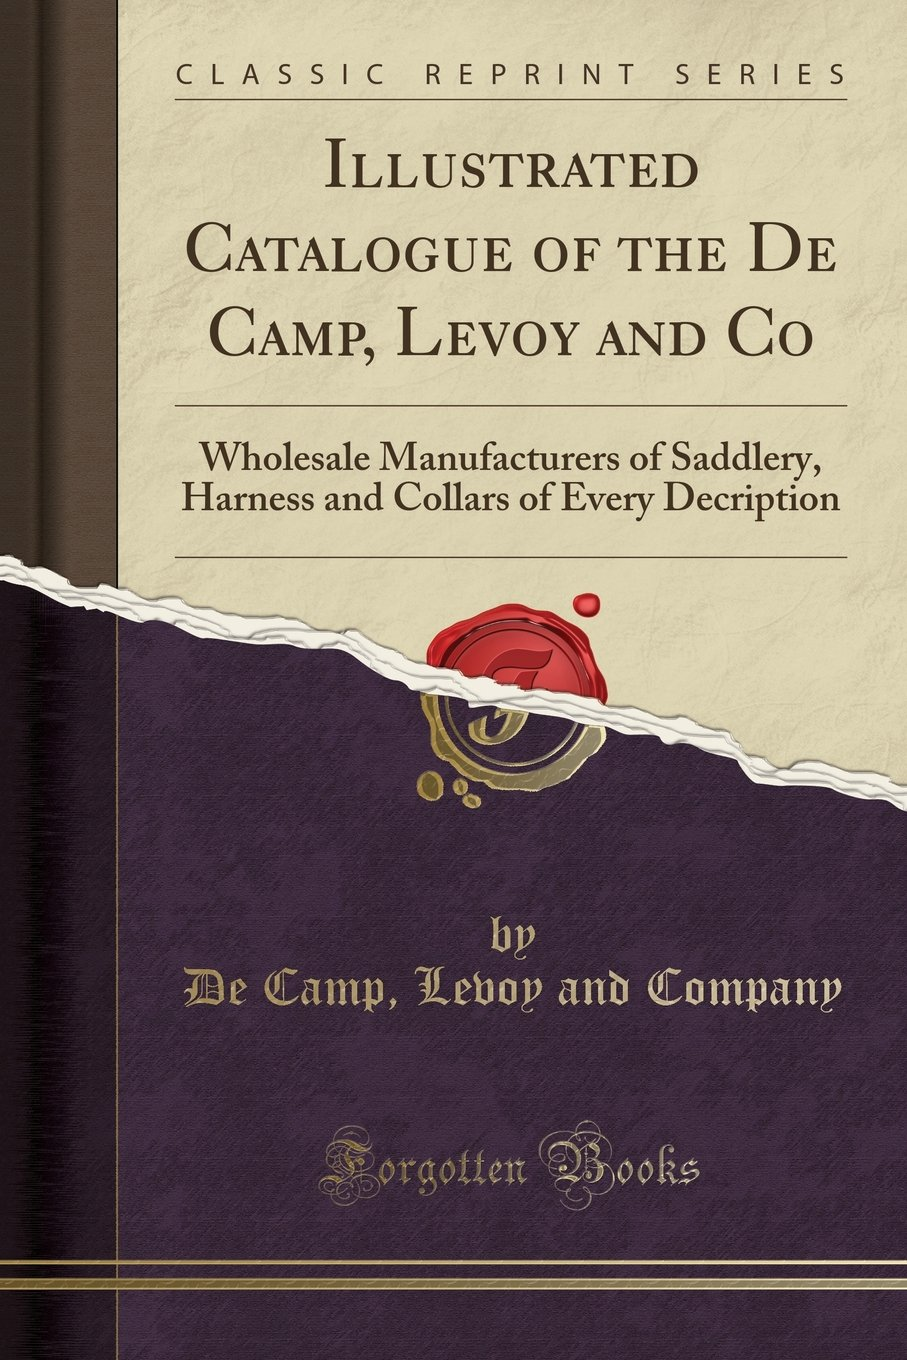 Download Illustrated Catalogue of the De Camp, Levoy and Co: Wholesale Manufacturers of Saddlery, Harness and Collars of Every Decription (Classic Reprint) PDF